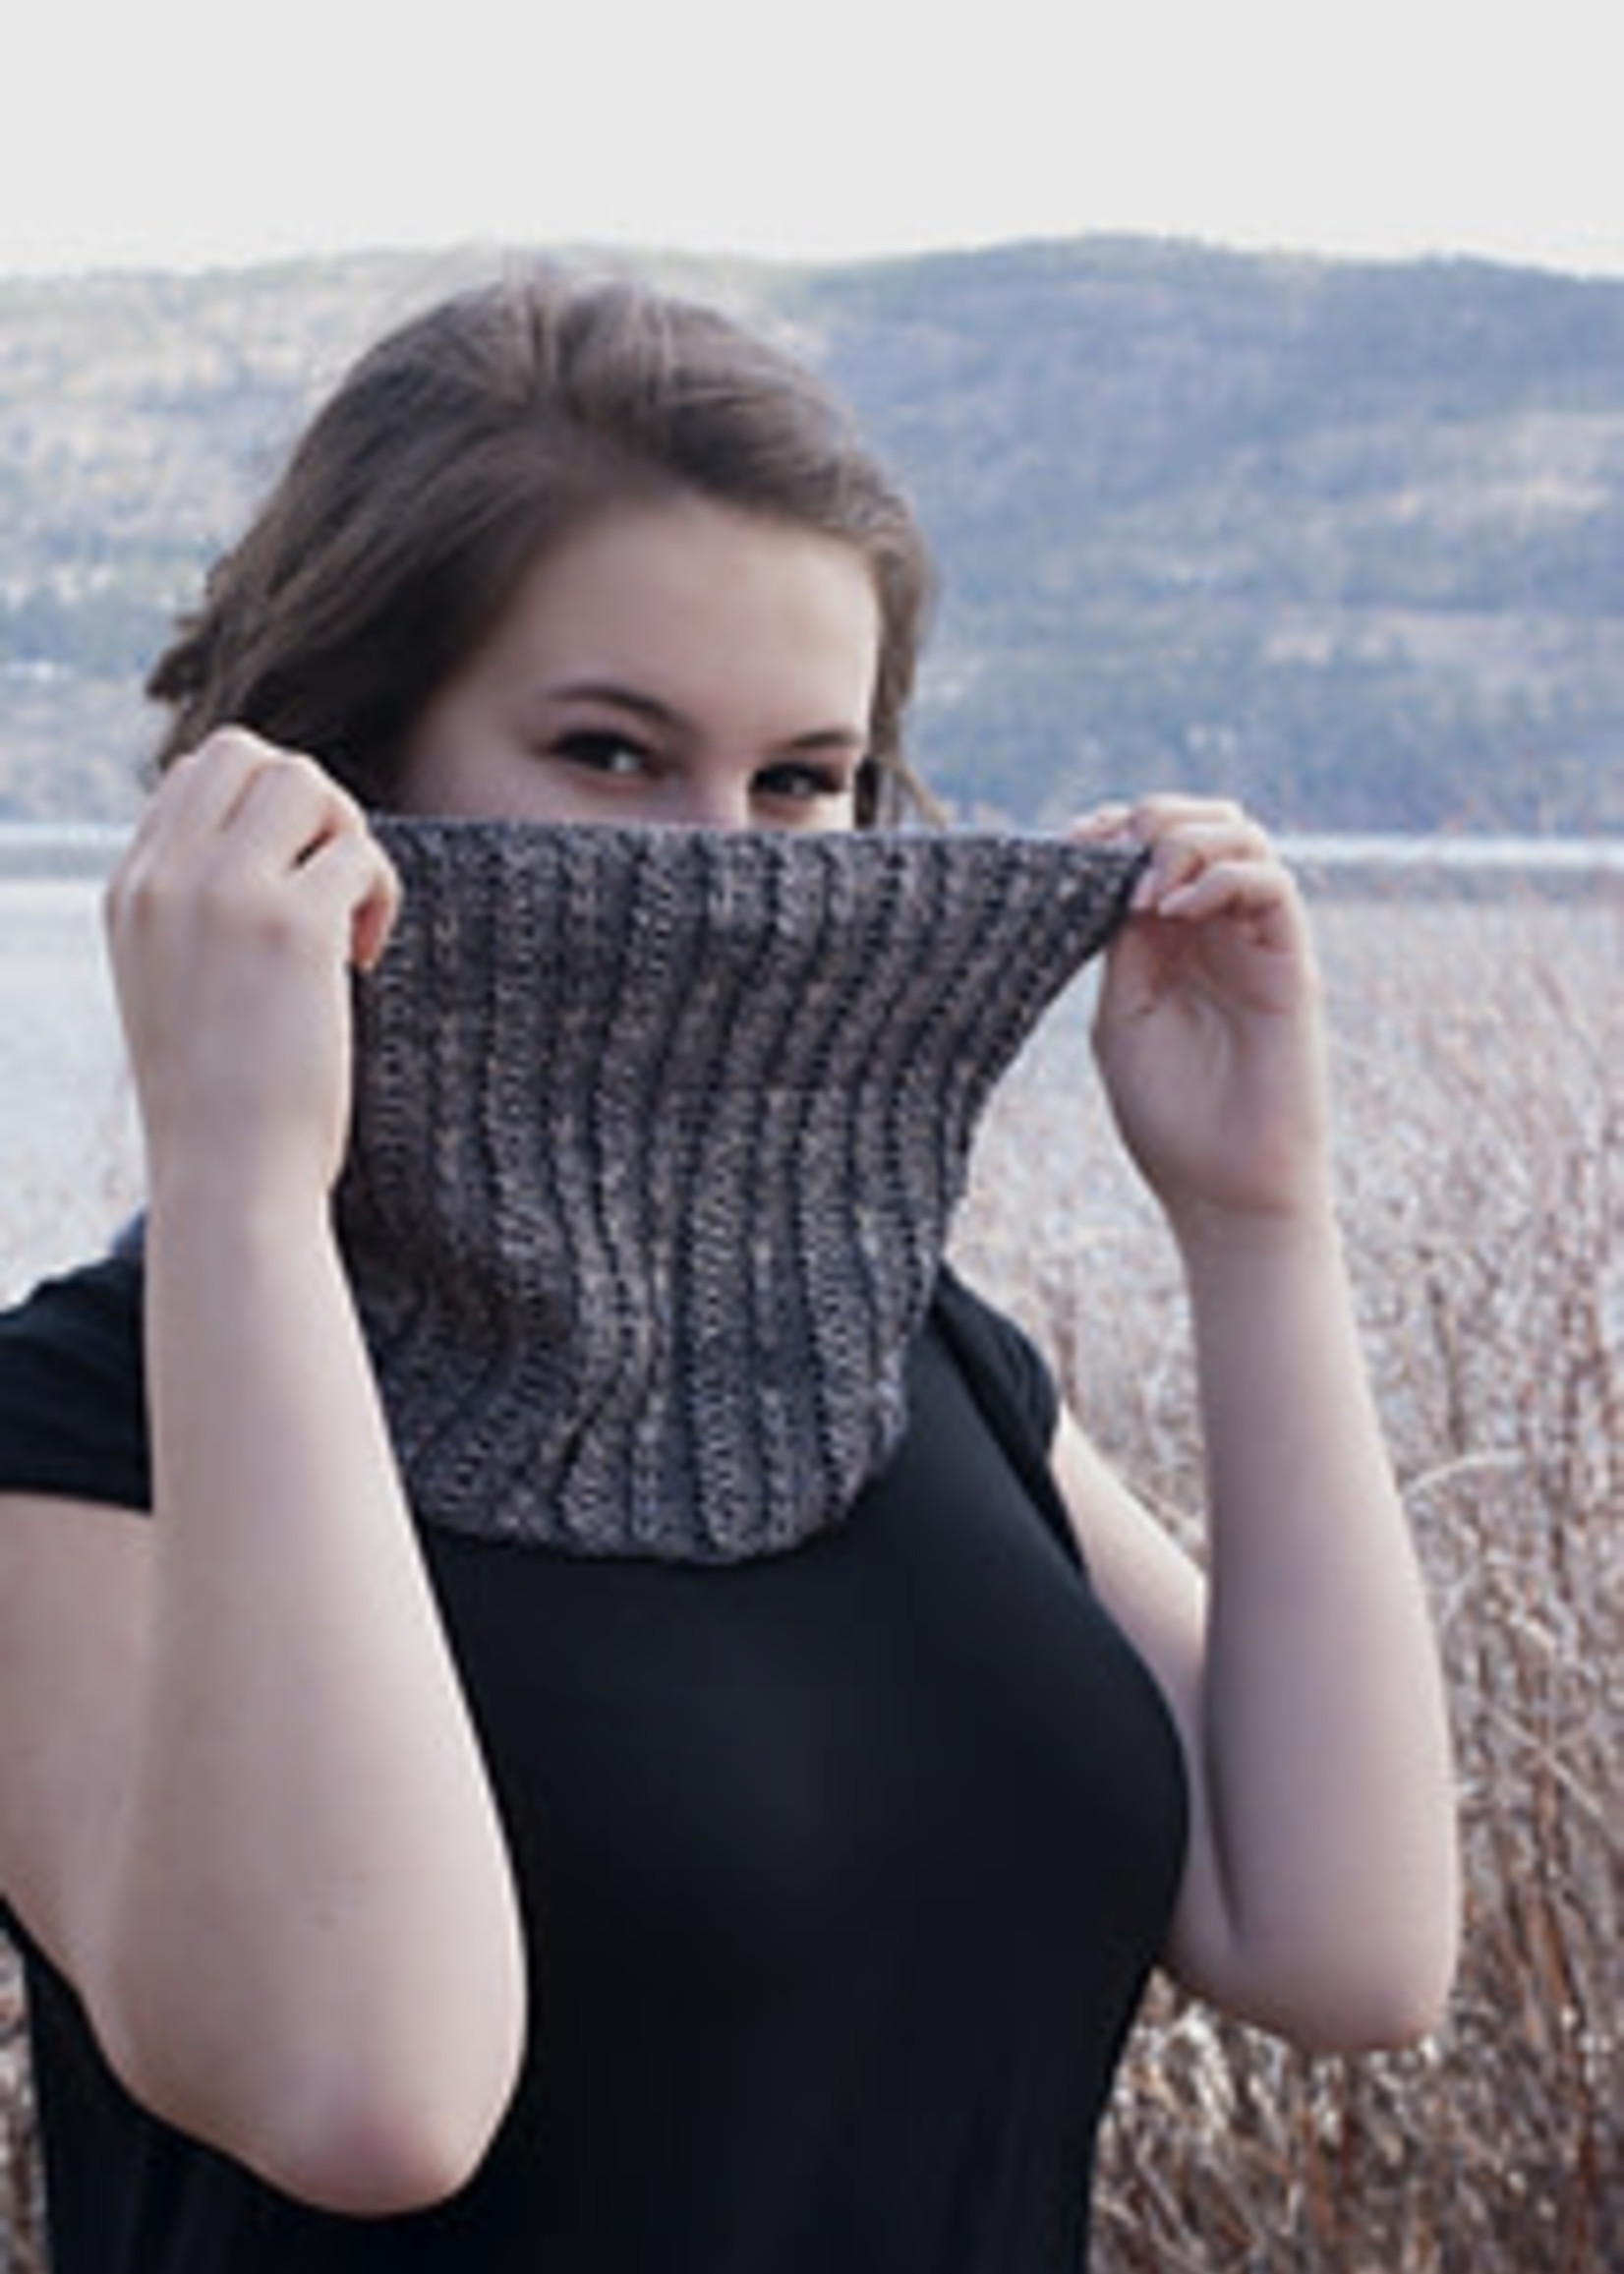 Knox Mountain Knit Co. Knox Mountain Knit Co. - Traders Cove Cowl